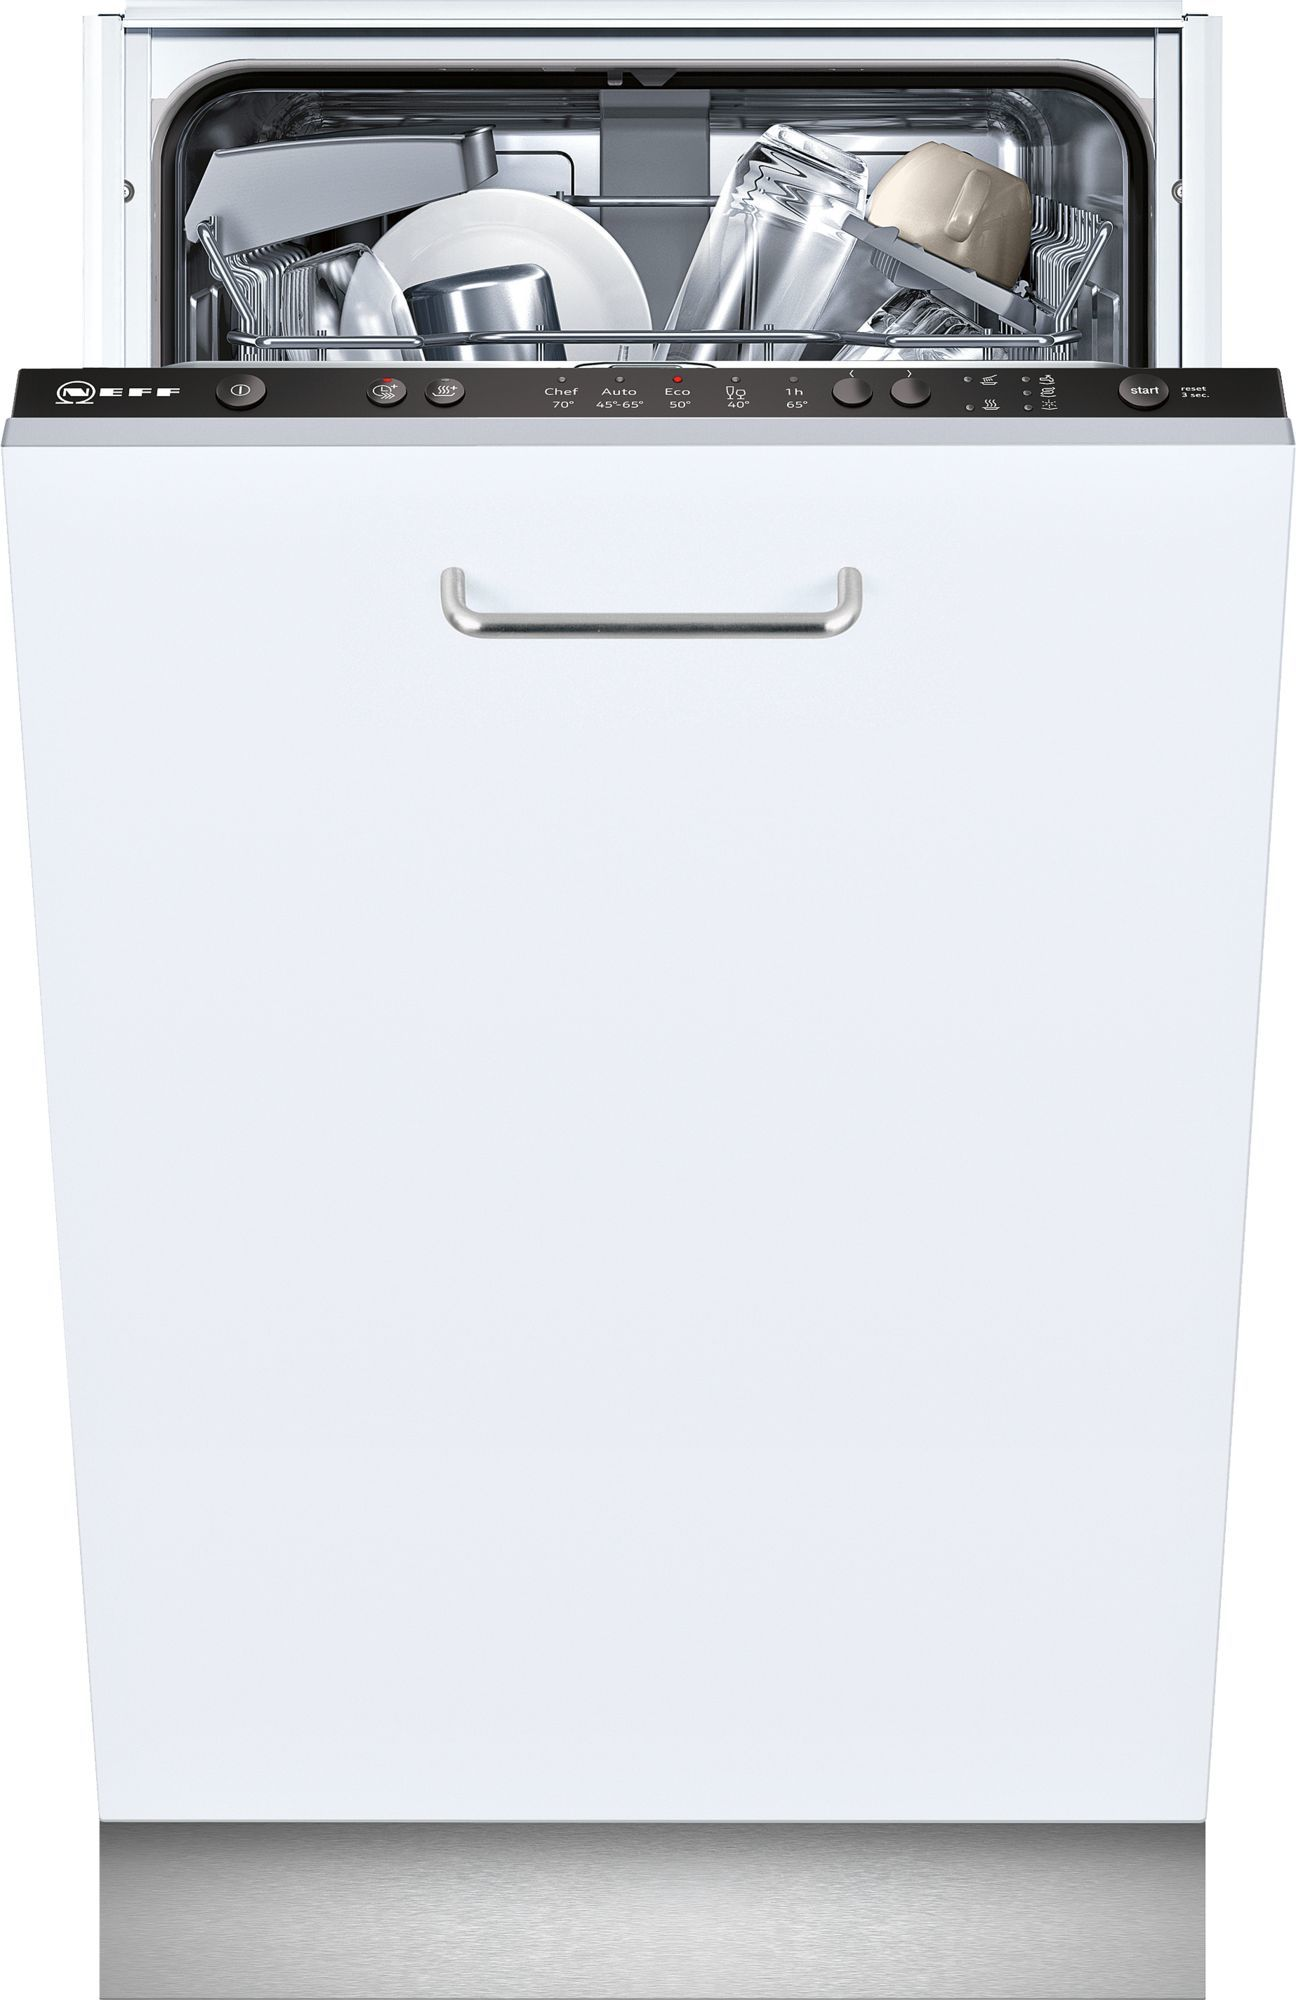 Photos 1: Neff Dishwasher cm. 45 - 9 covered total disappearance S581C50X3E